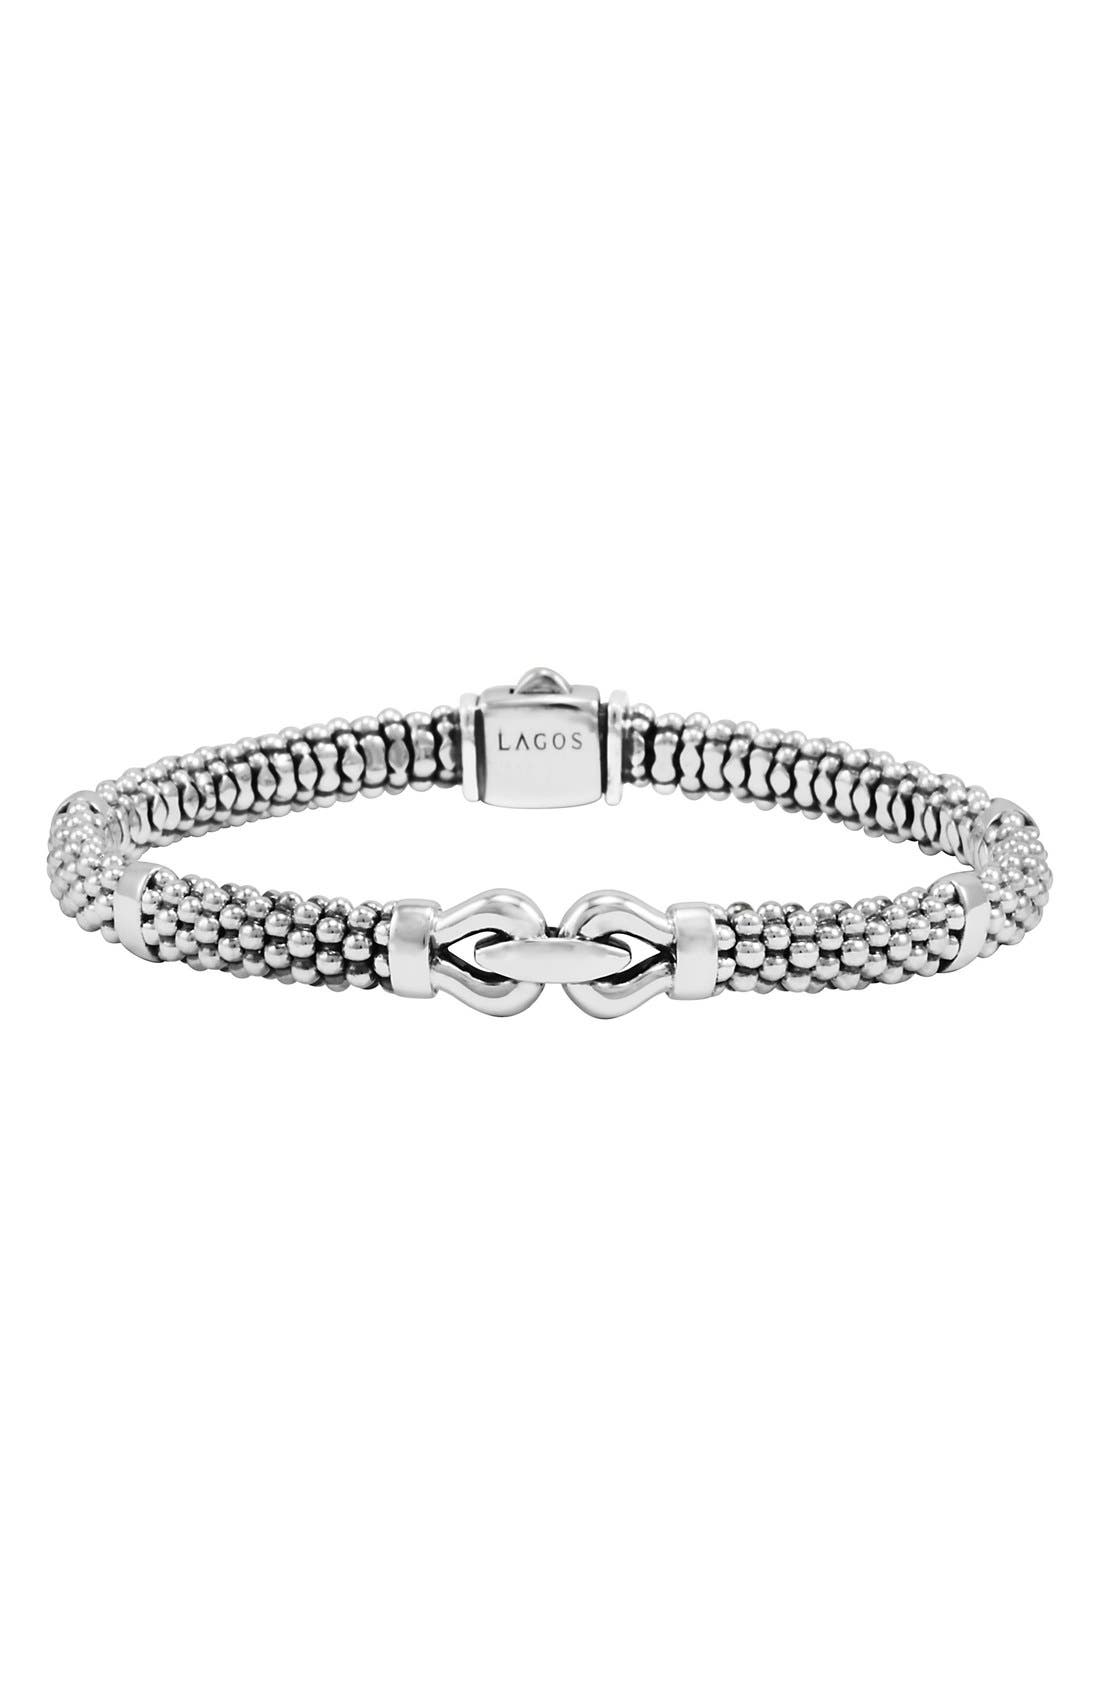 'Derby' Buckle Rope Bracelet,                             Main thumbnail 1, color,                             STERLING SILVER